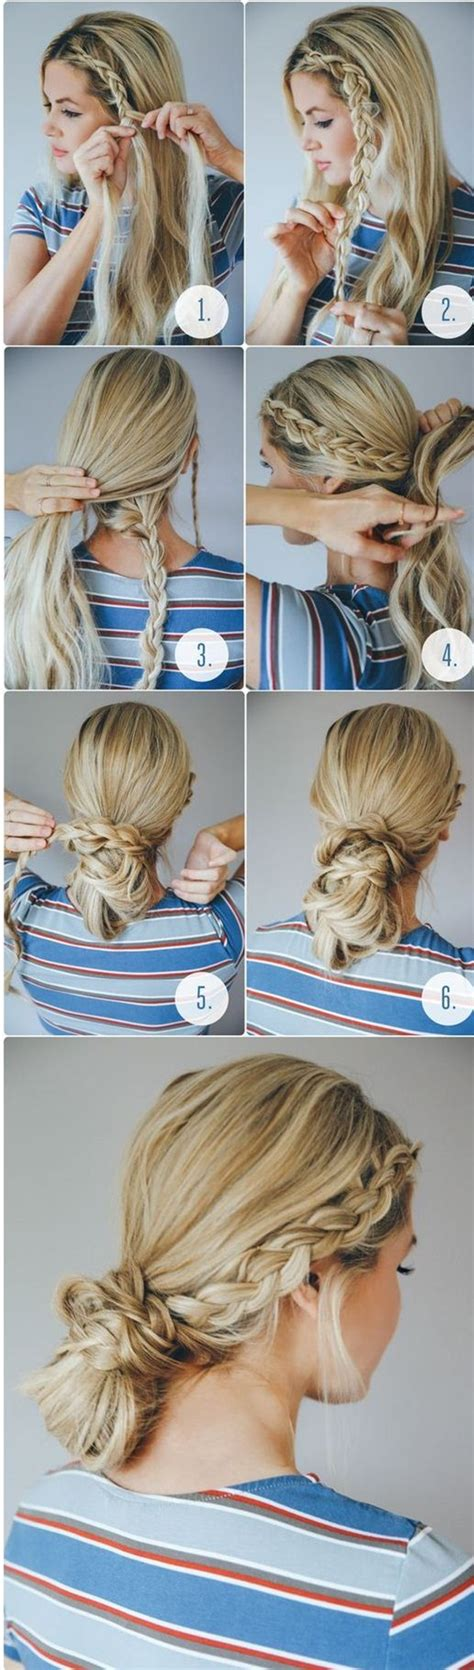 easy to do school hairstyles for hair 40 easy hairstyles for schools to try in 2016